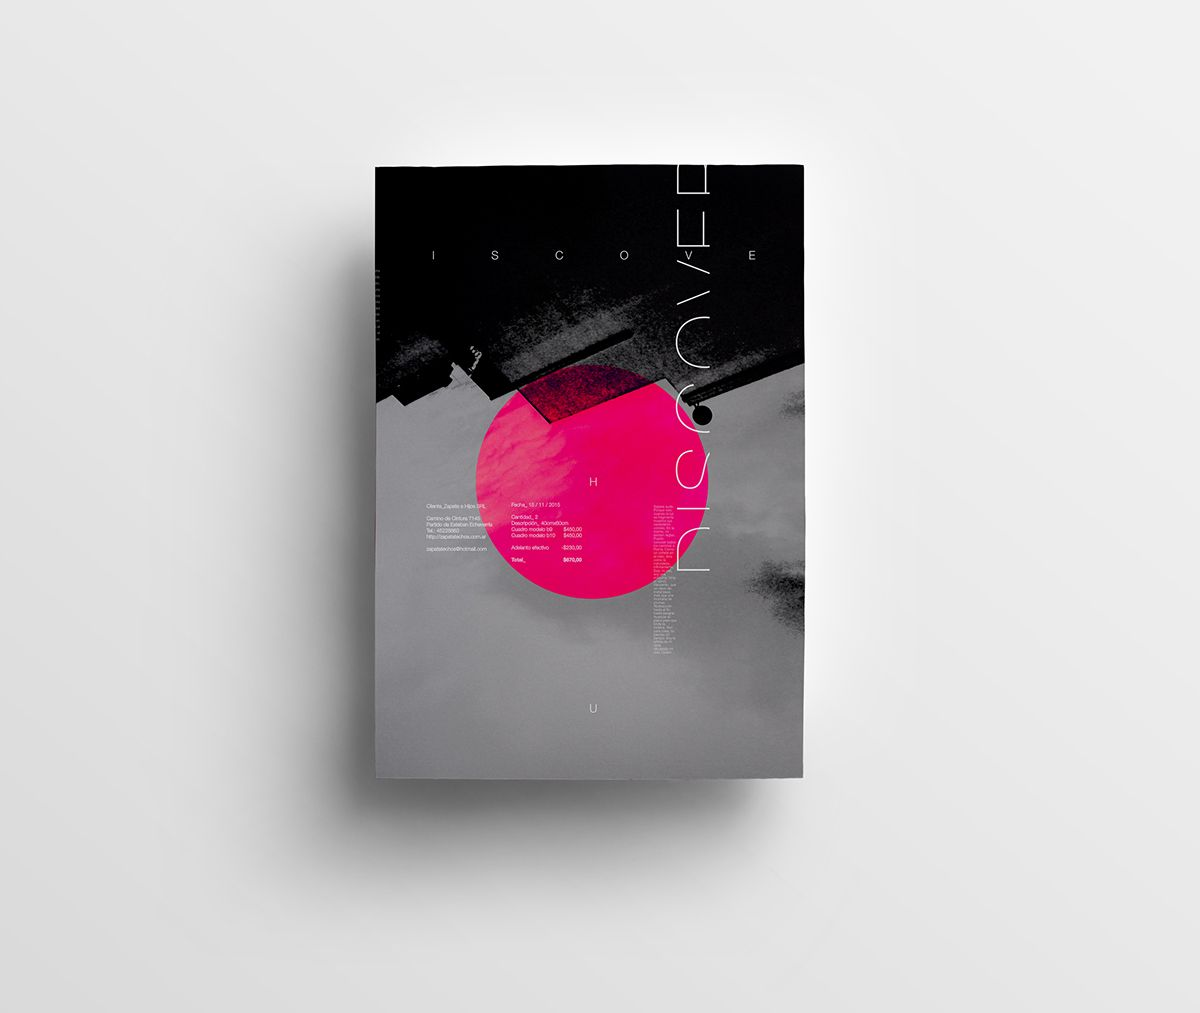 https://www.behance.net/gallery/34399581/Poster-collection-vol2